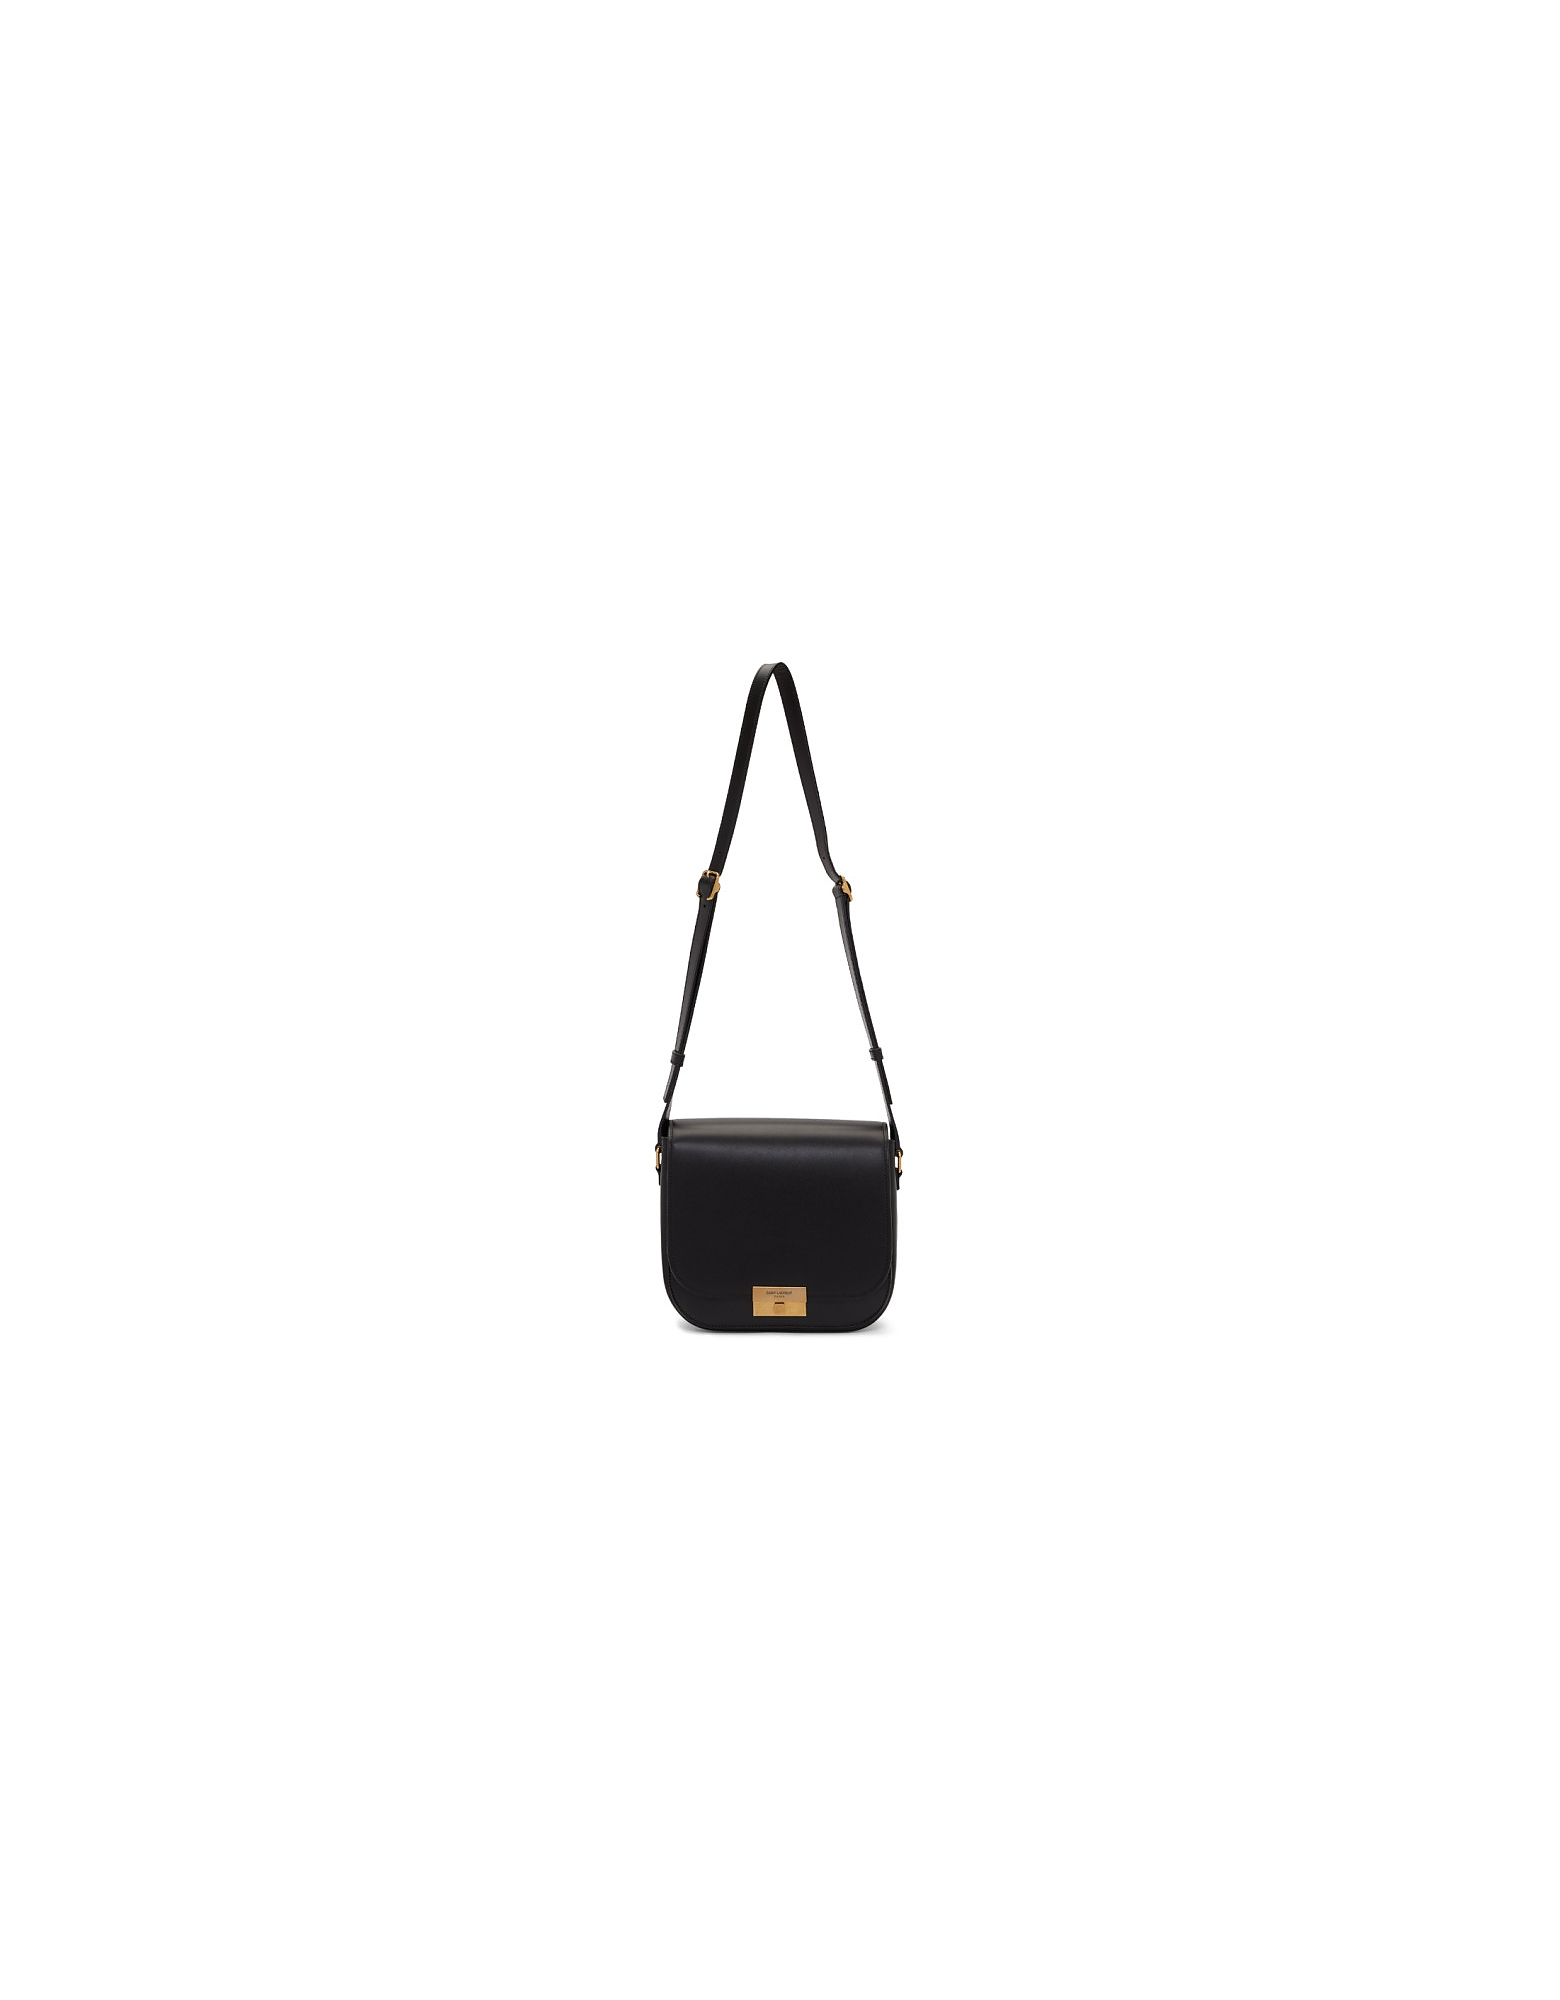 Saint Laurent Designer Handbags, Black Betty Satchel Bag